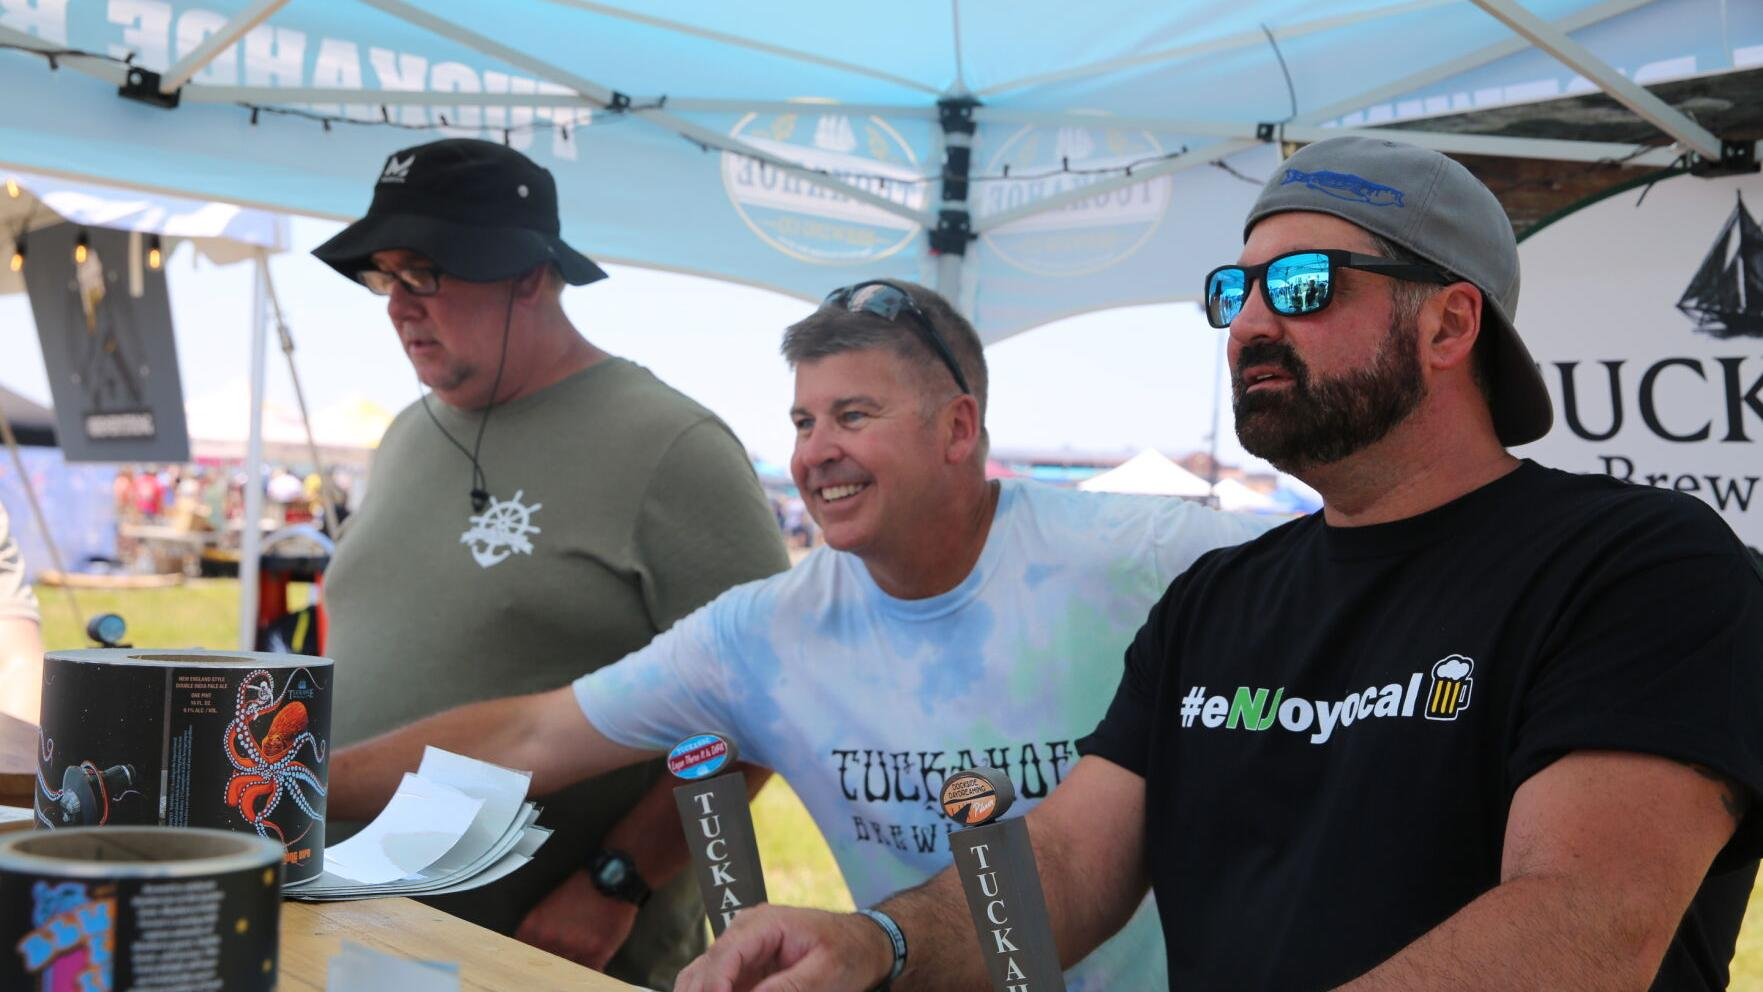 Atlantic City Beer and Music Festival attendees, brewers eager to 'resume normal'